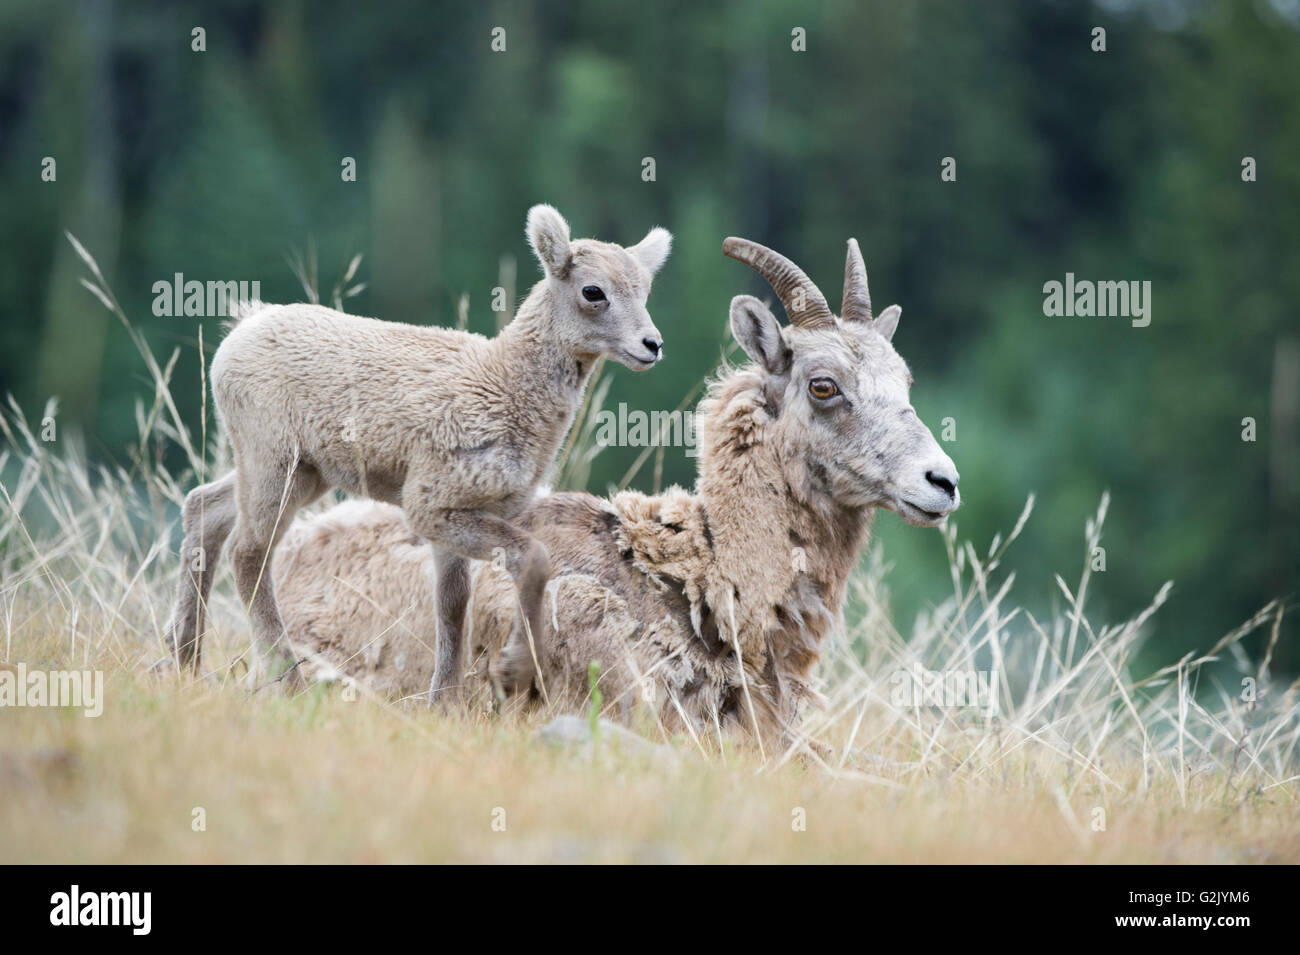 Lamb, Ewe, Female, Bighorn Sheep, Ovis canadensis, Rocky Mountains, Alberta, Canada - Stock Image